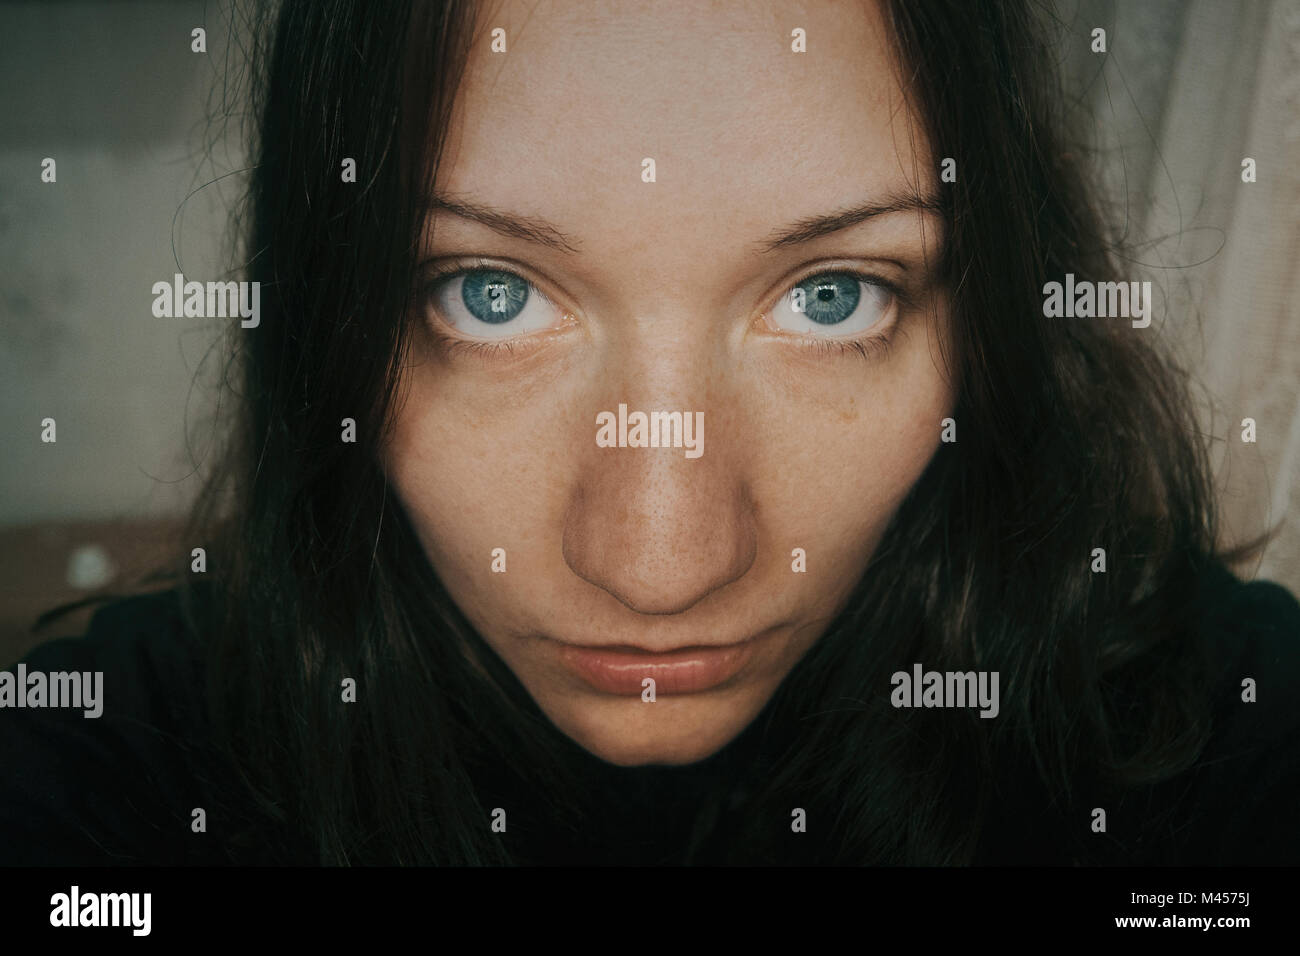 Big Blue Eyes Of Girl Looking At Camera Stock Photo 174677710 Alamy